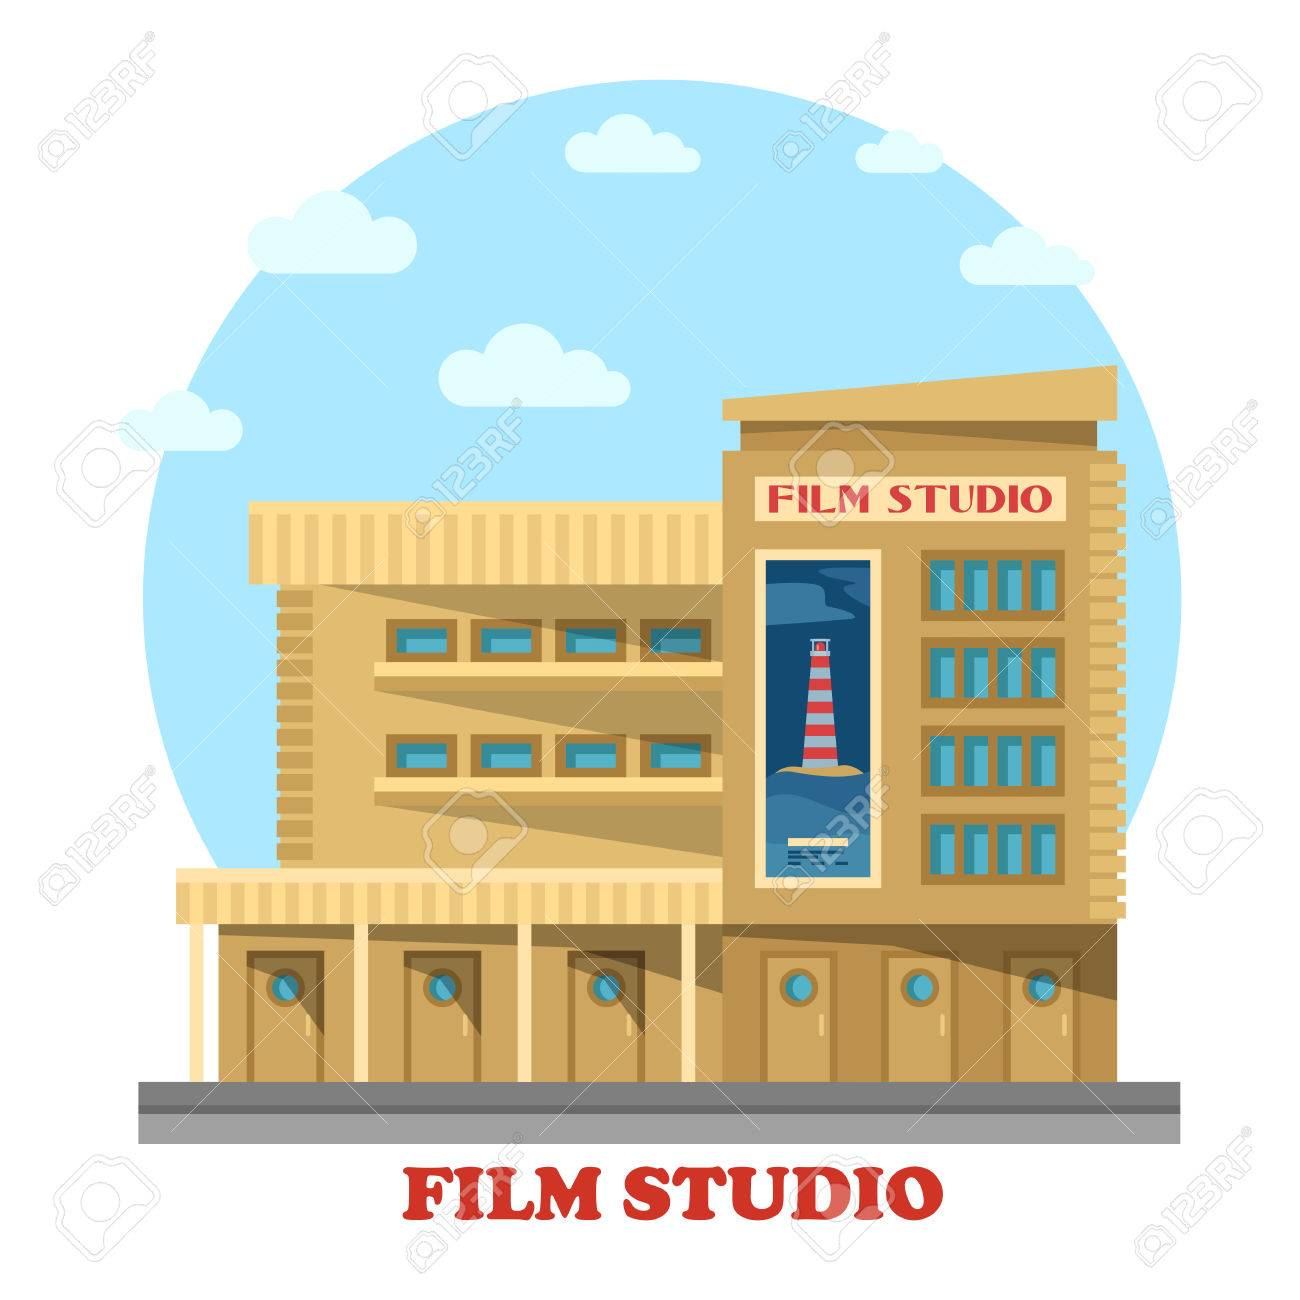 Film Or Movie Studio Building Facade Architecture Of Construction